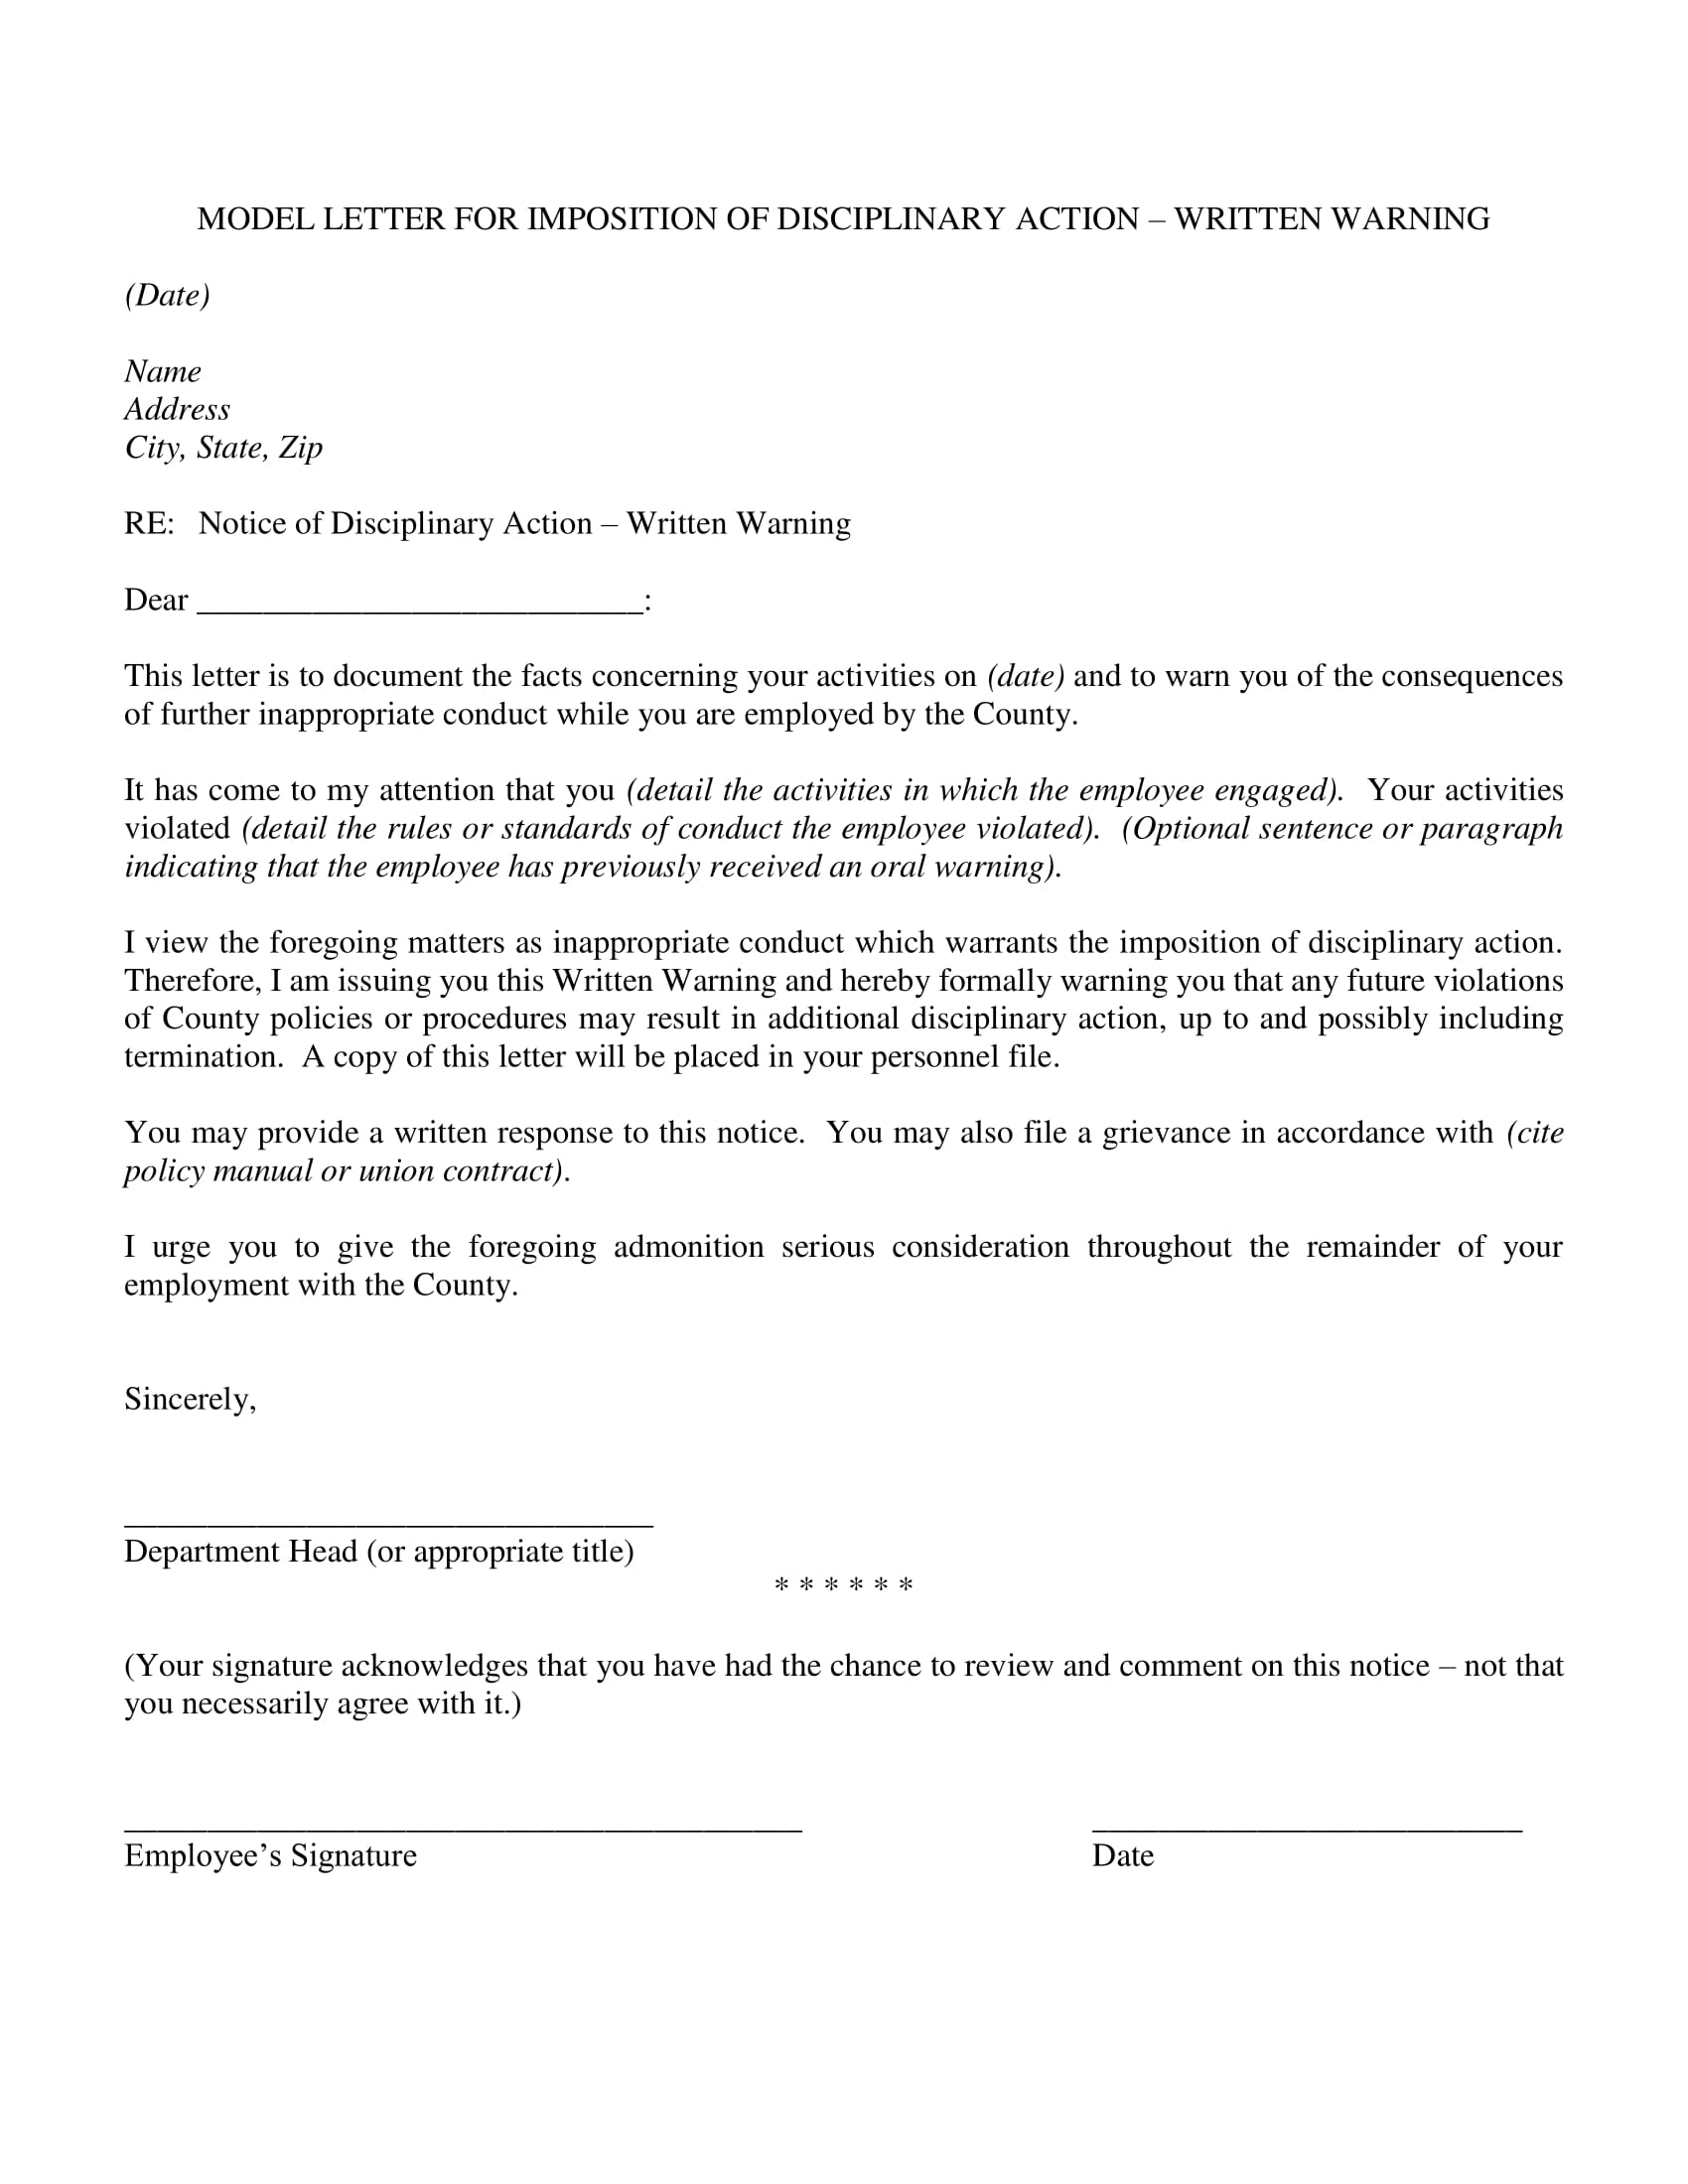 9 employee warning letter examples pdf word employee written warning letter for imposition of disciplinary action altavistaventures Image collections